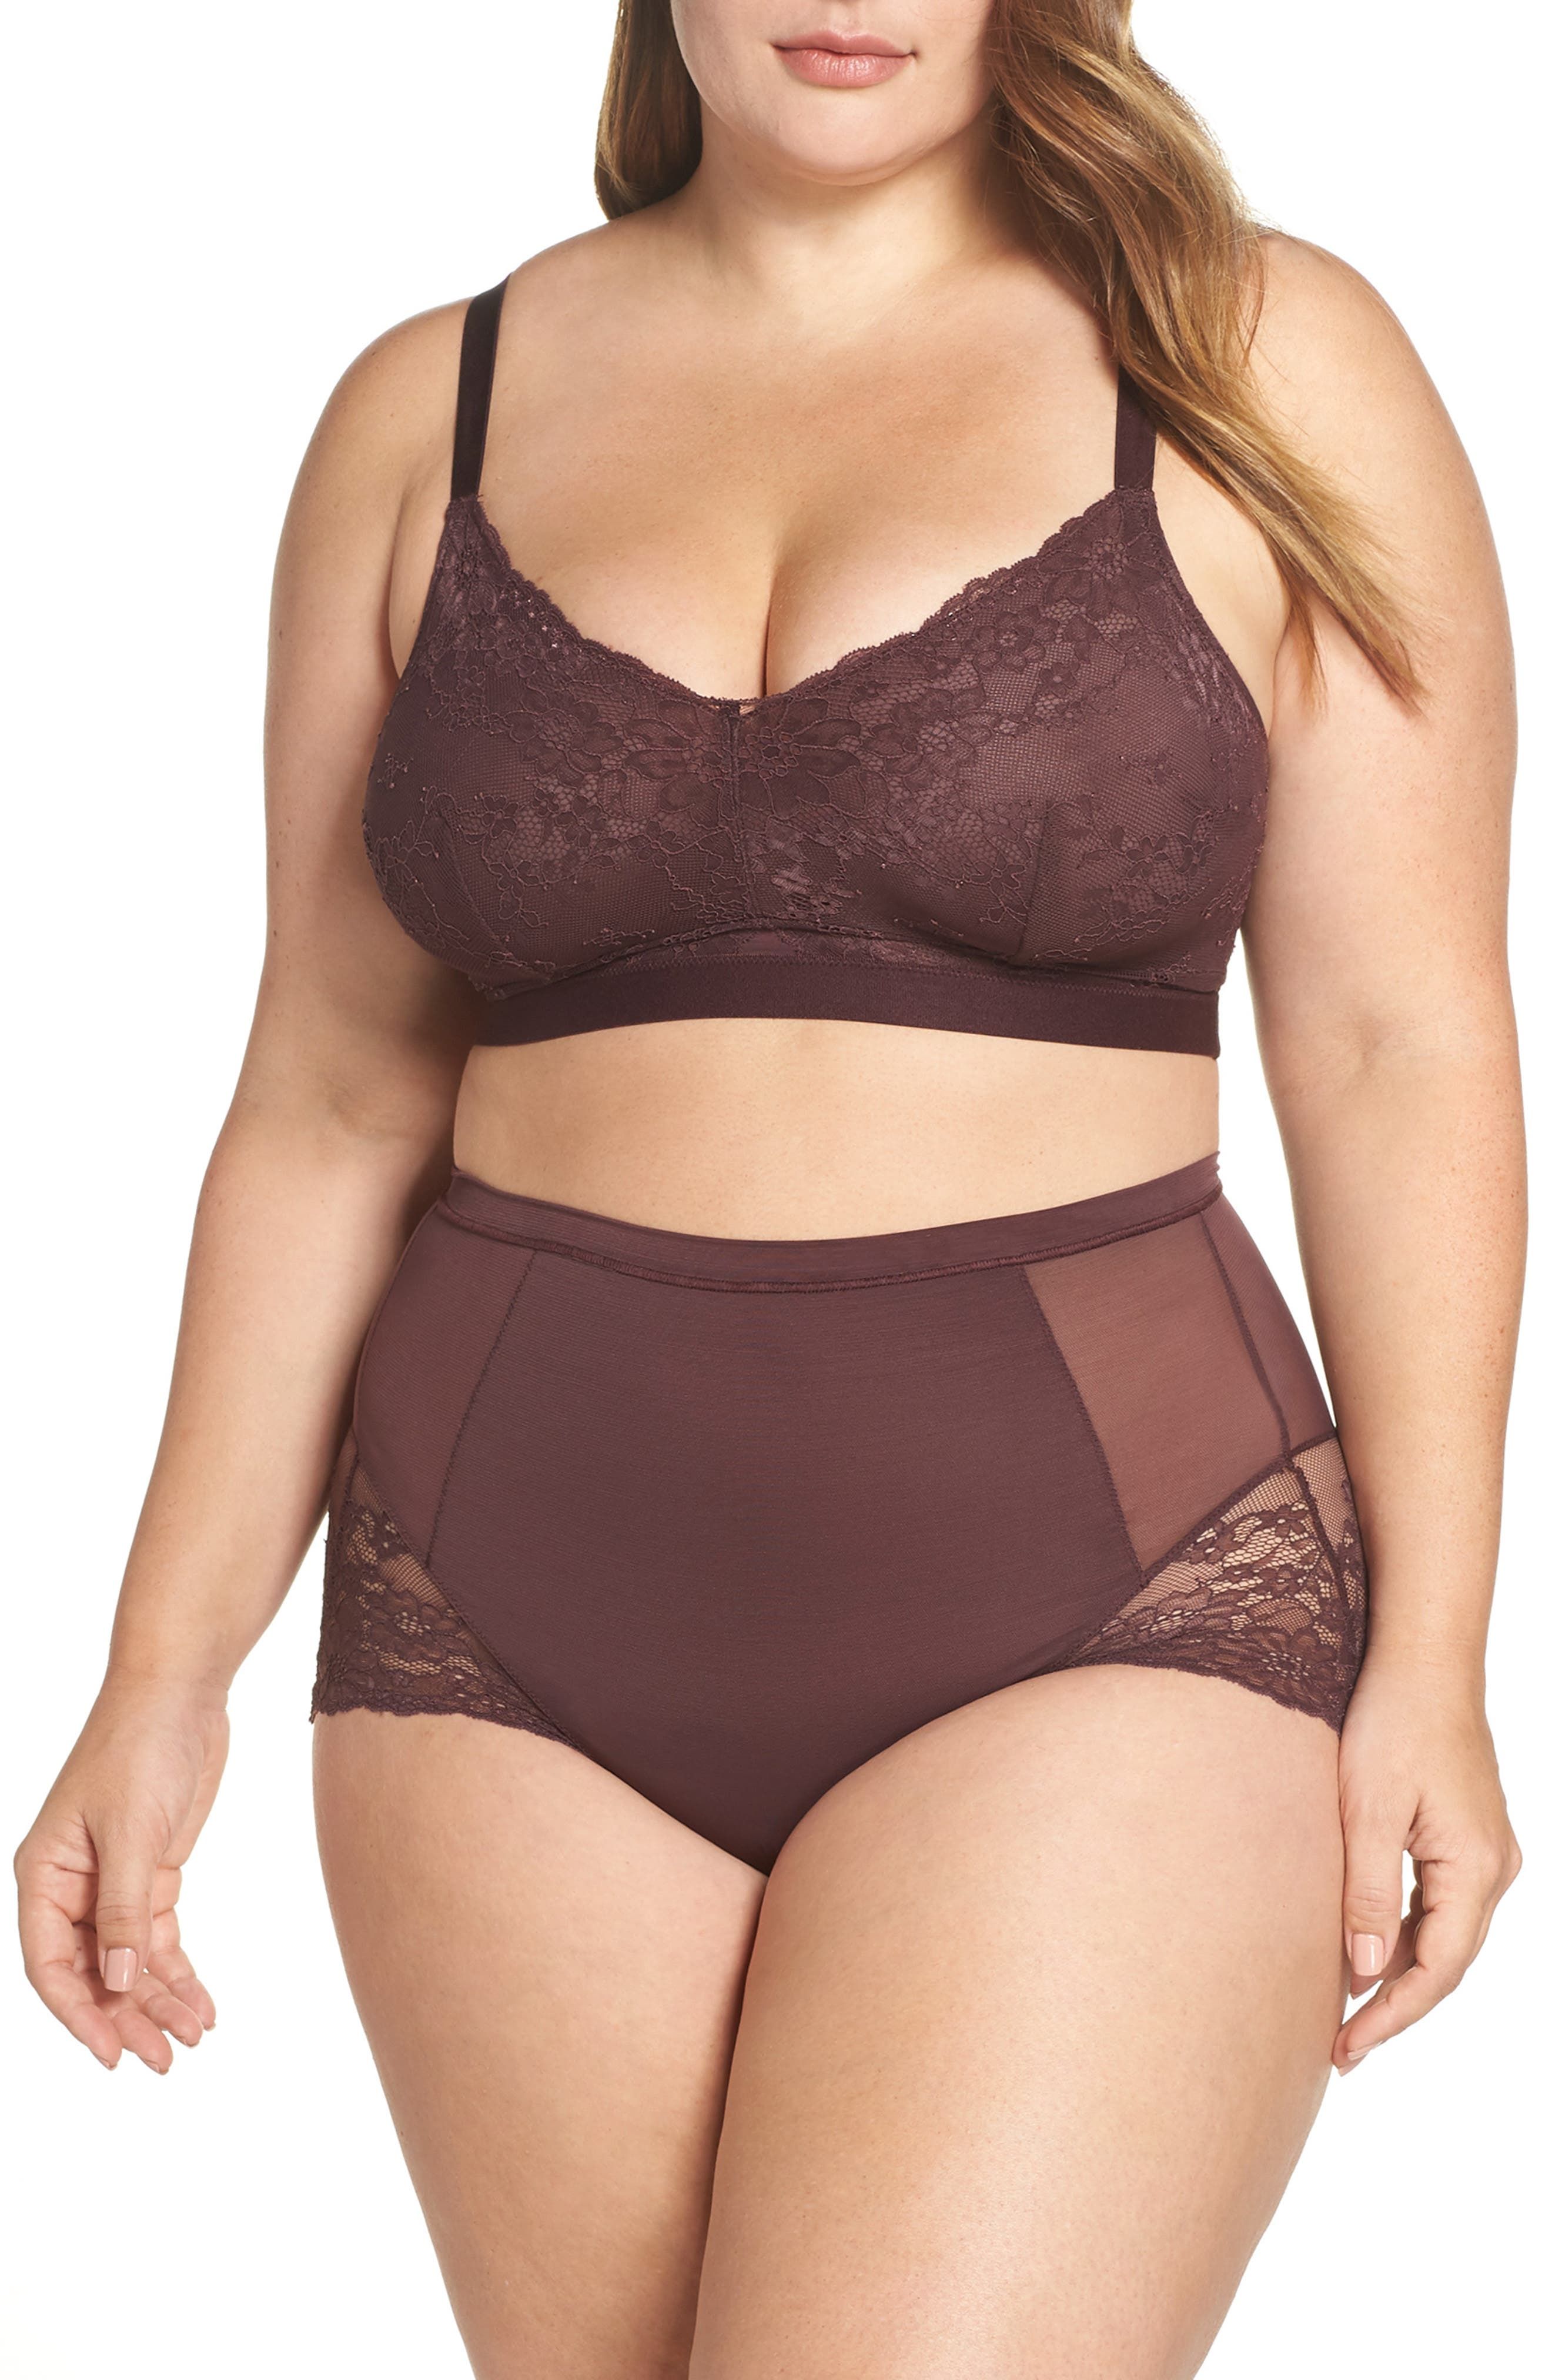 Spotlight On Lace Bralette,                             Alternate thumbnail 9, color,                             GARNET